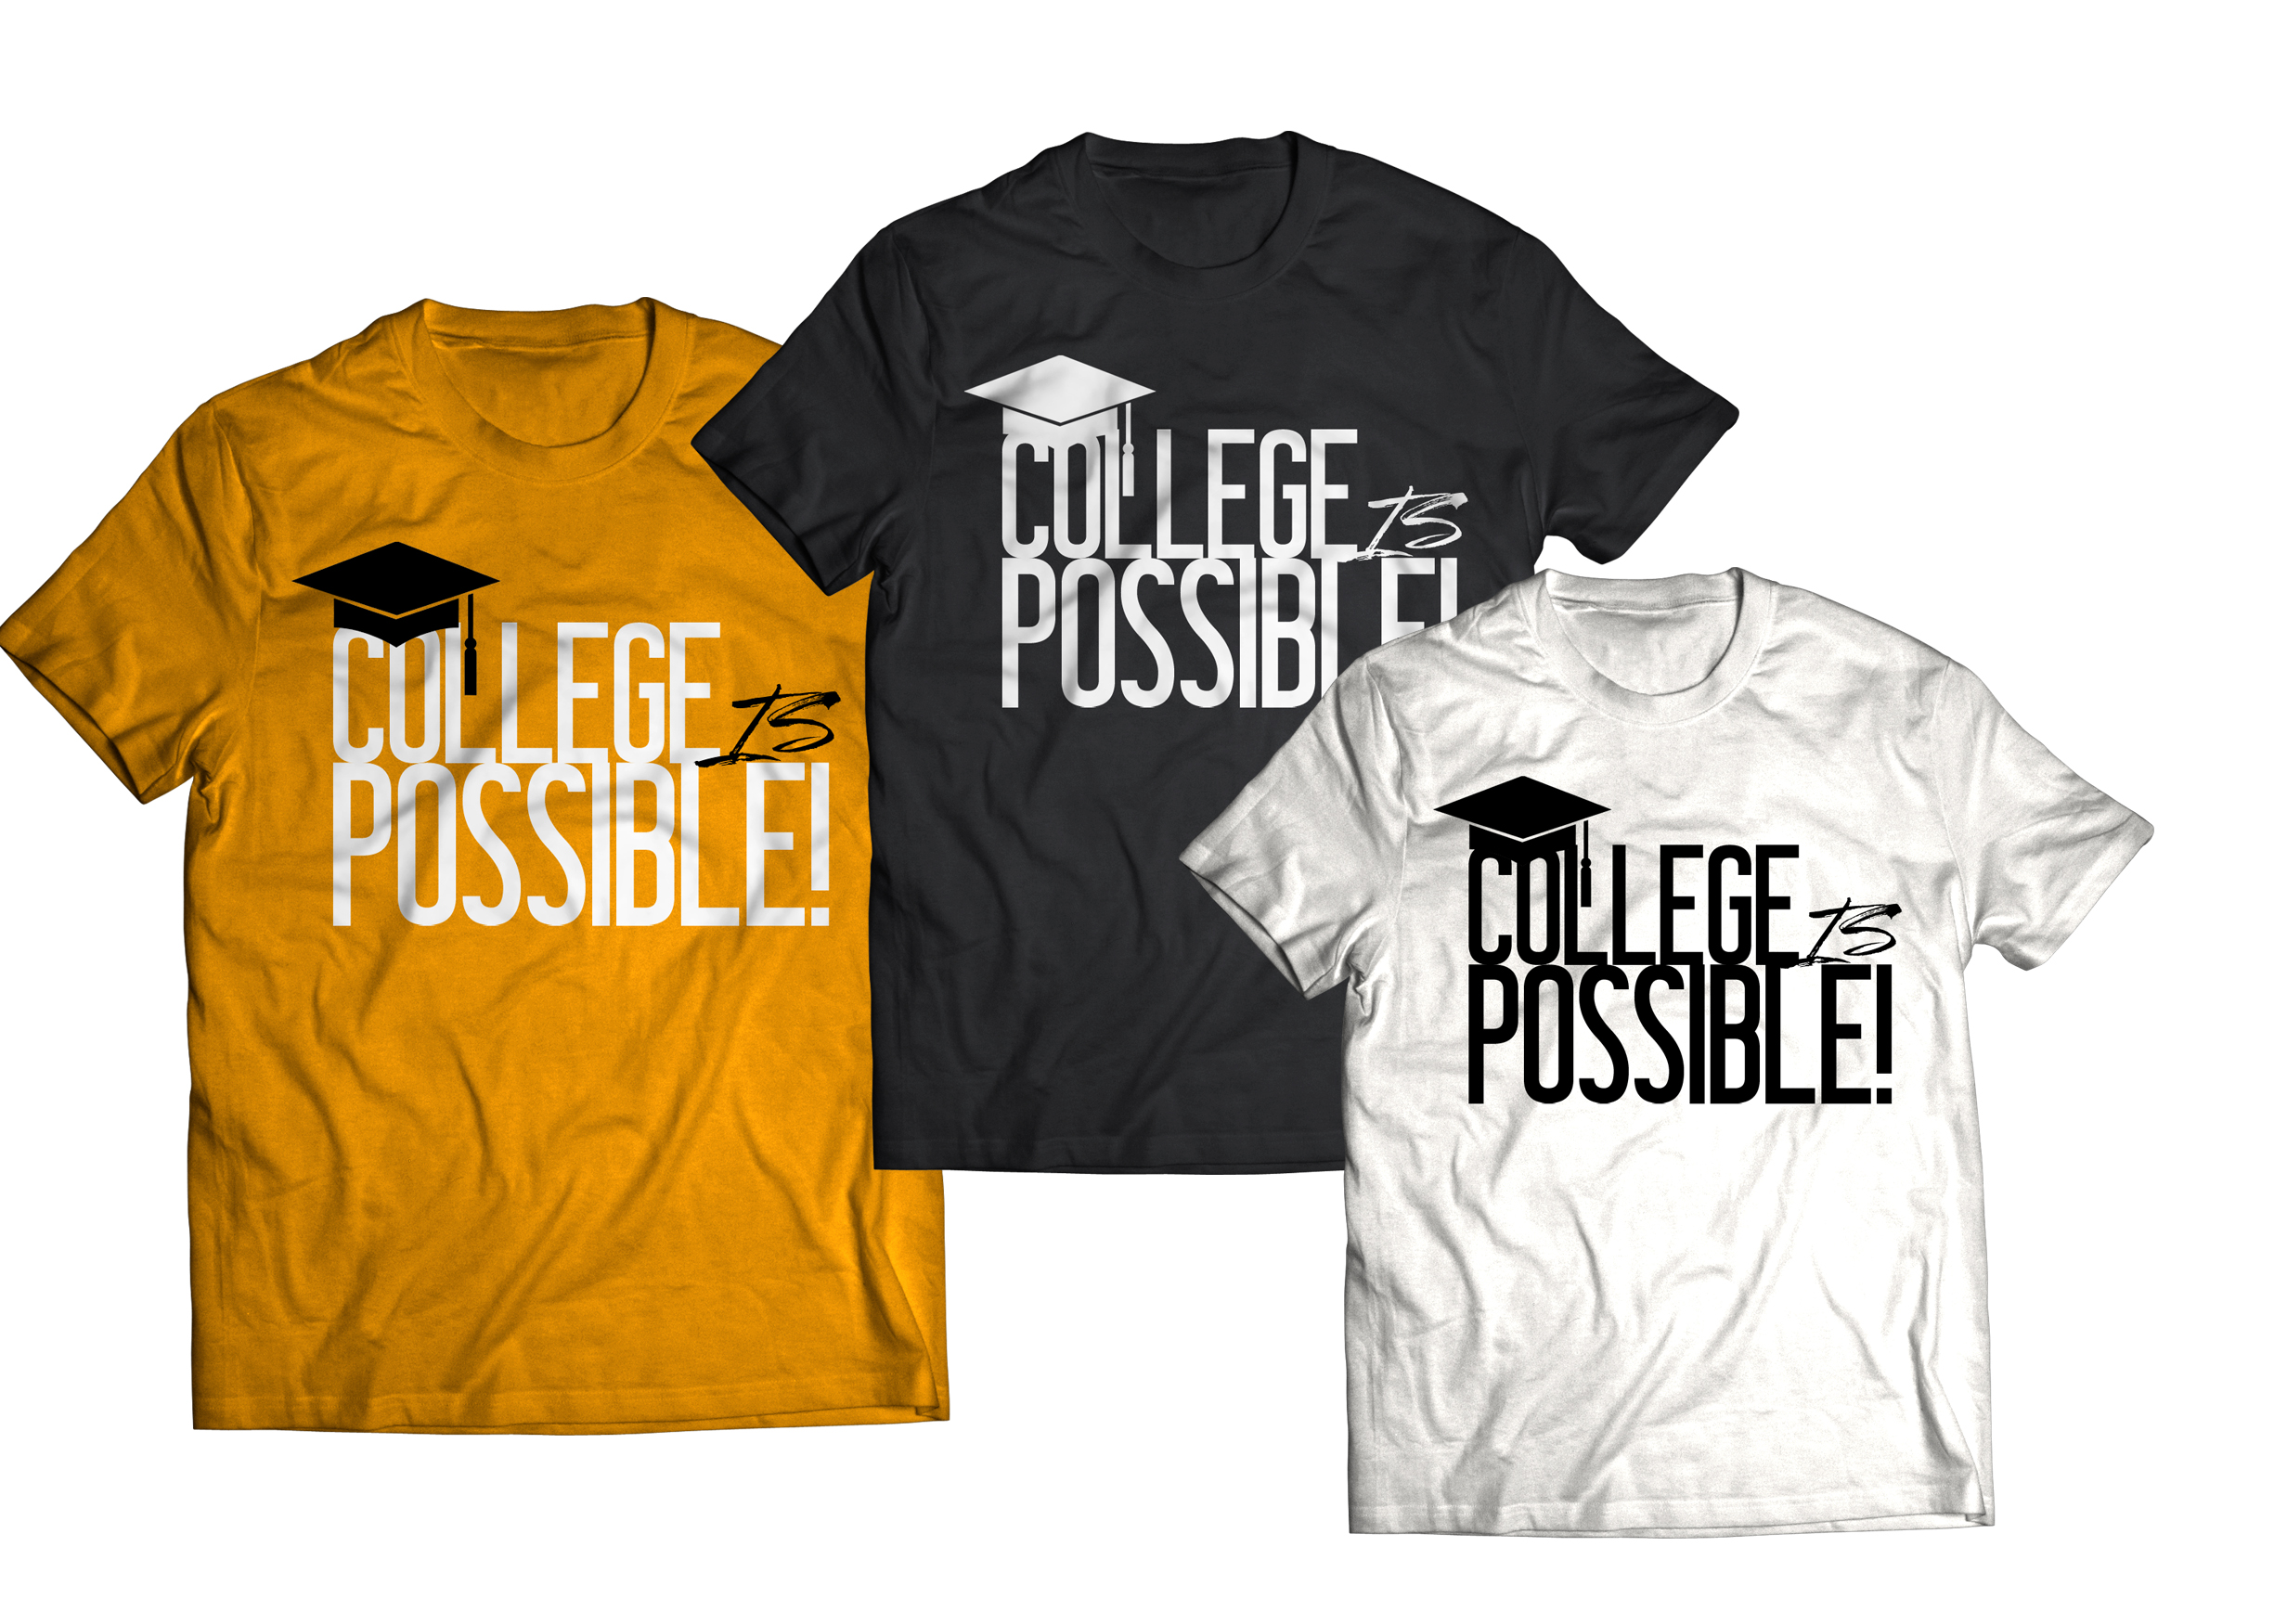 college is possible shirt.jpg